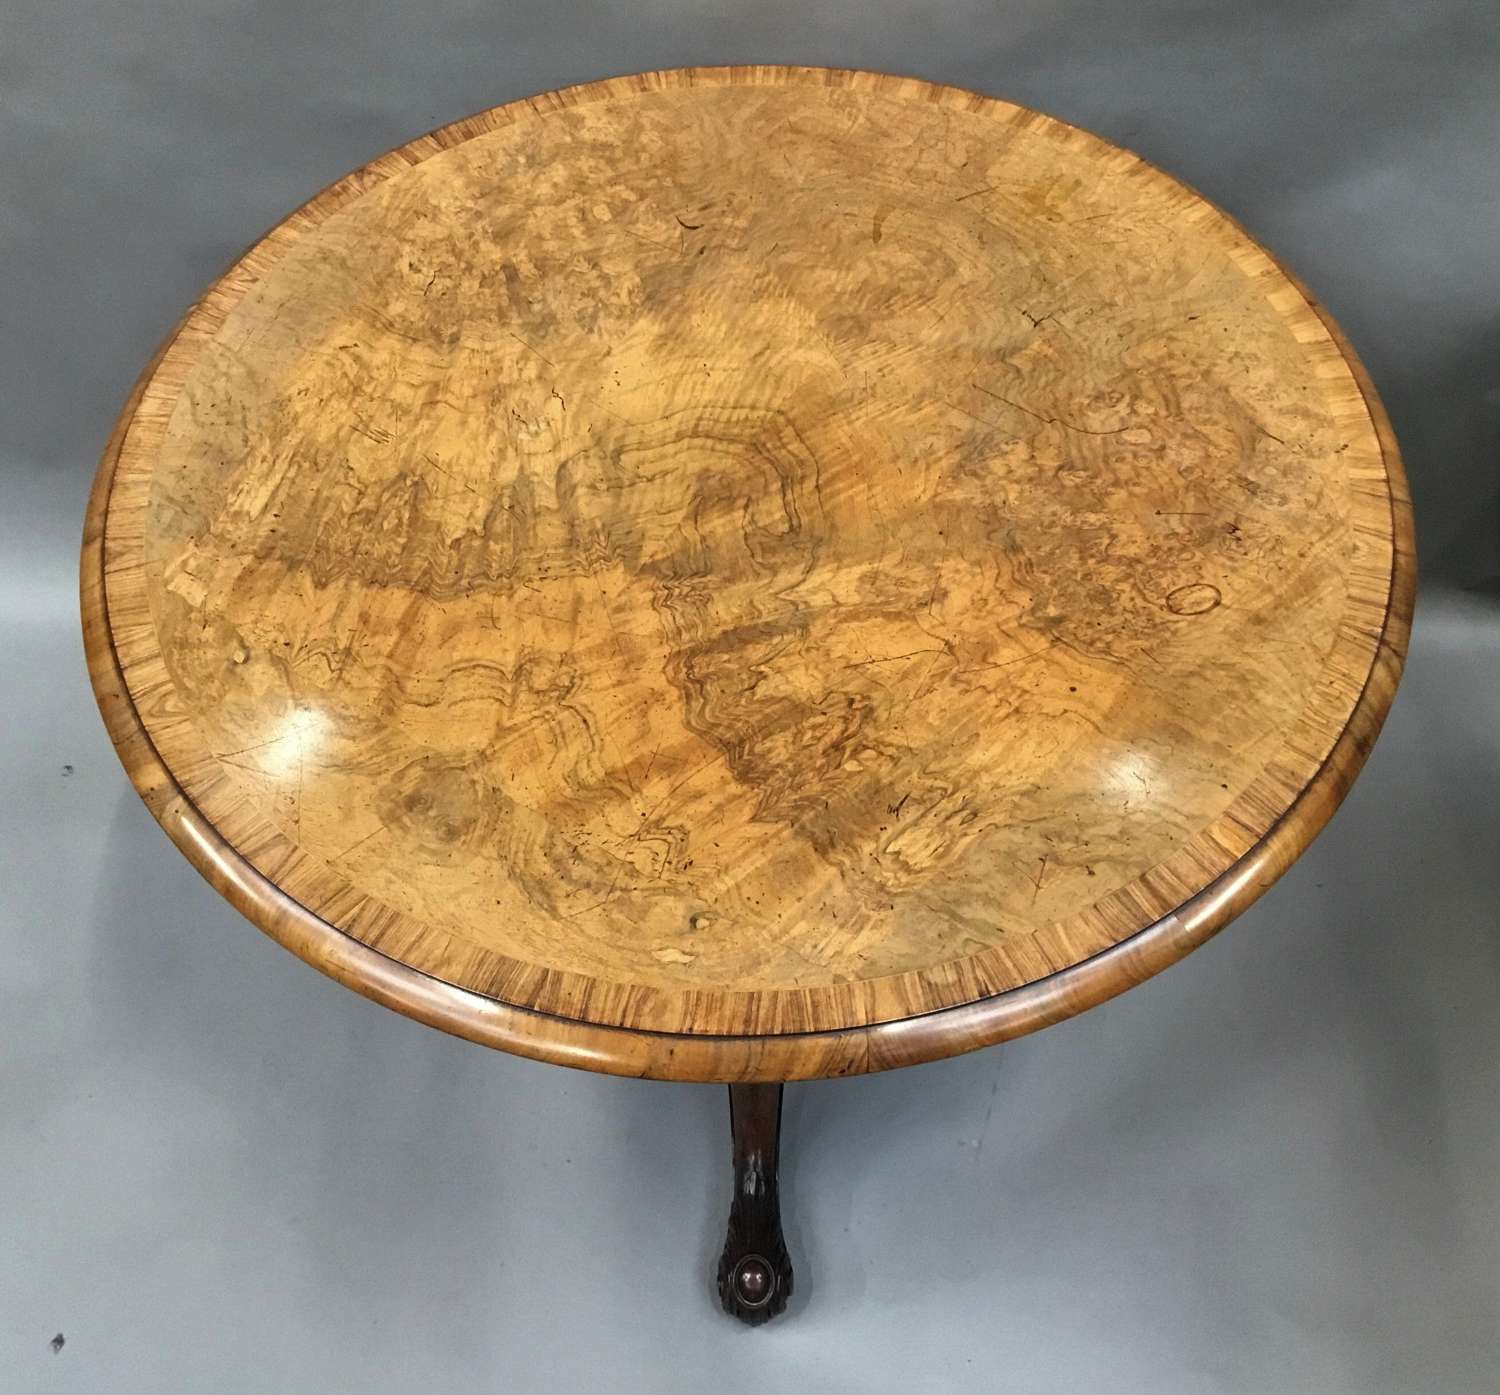 George IV Gillows centre table in burr walnut and goncalo alves